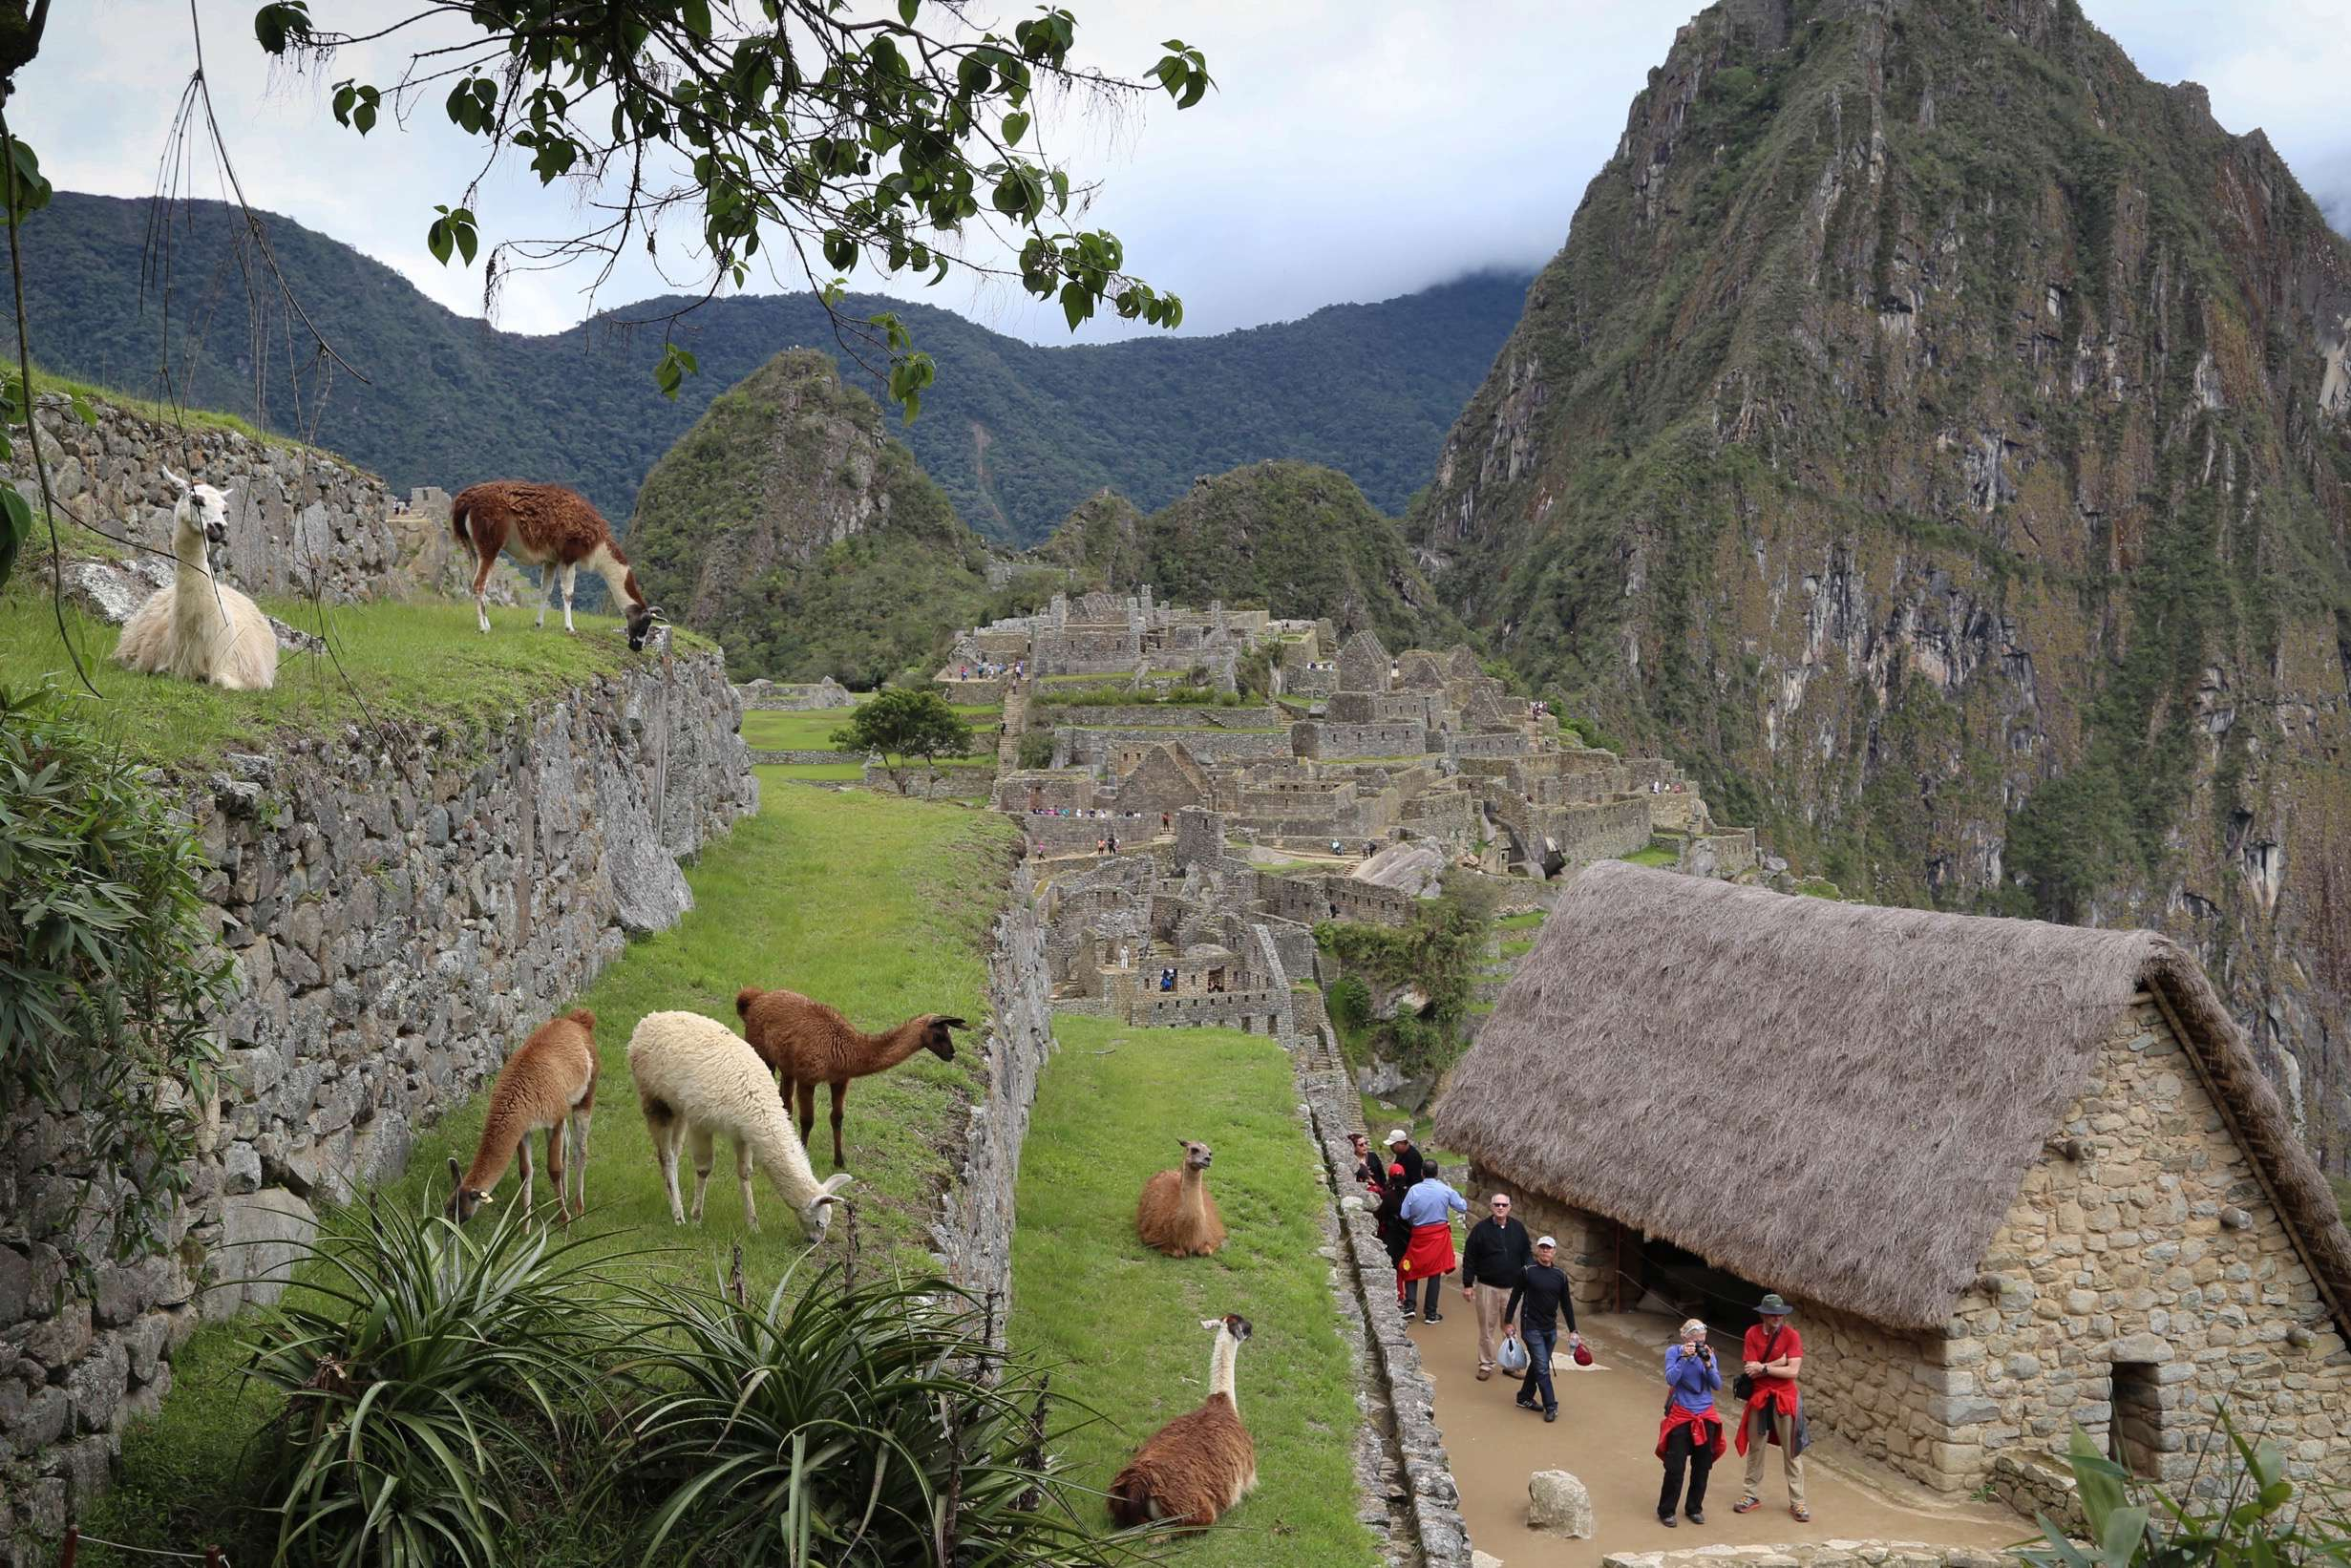 The llamas are a relatively new addition to Machu Picchu, but the do an excellent job of keeping the grass down on the terraces and other areas.